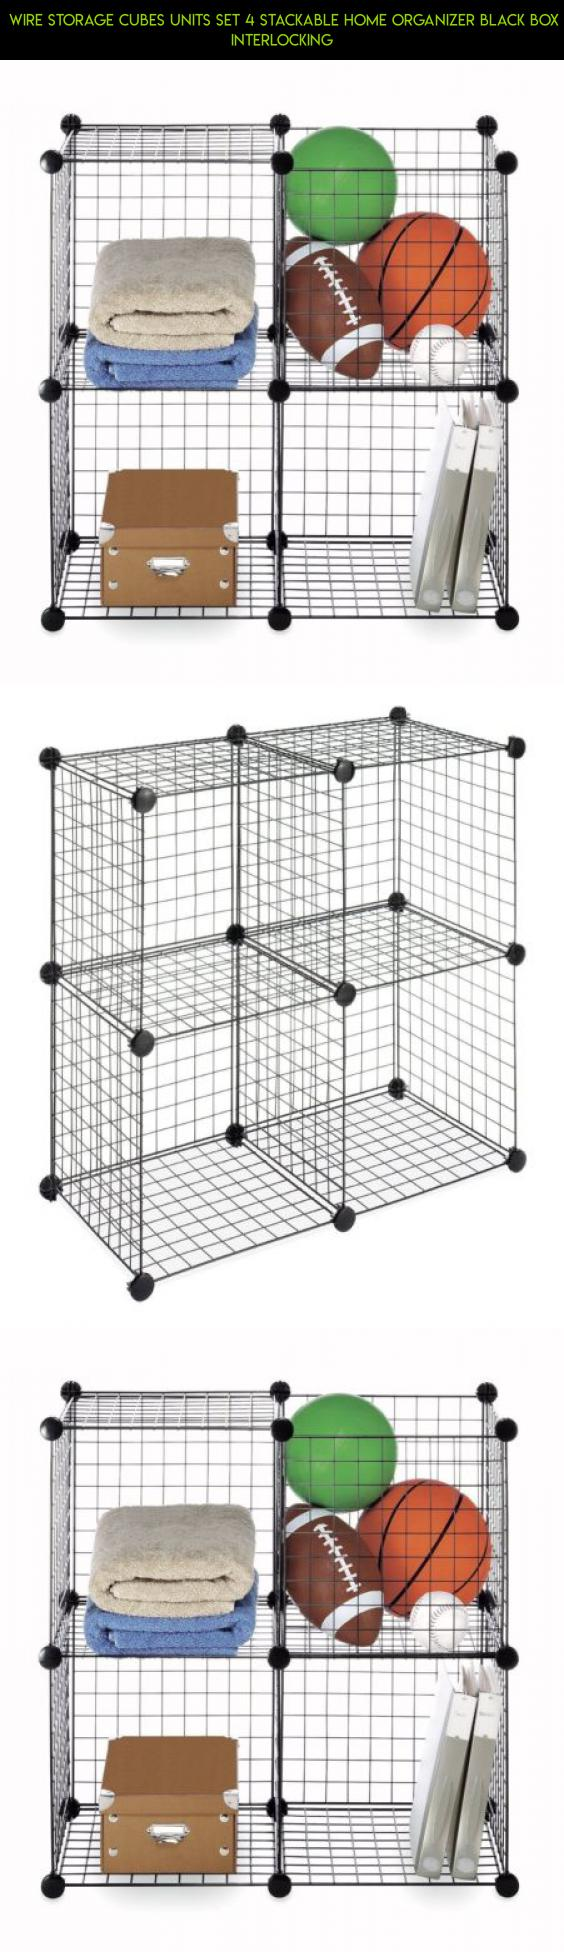 Wire Storage Cubes Units Set 4 Stackable Home Organizer Black Box ...